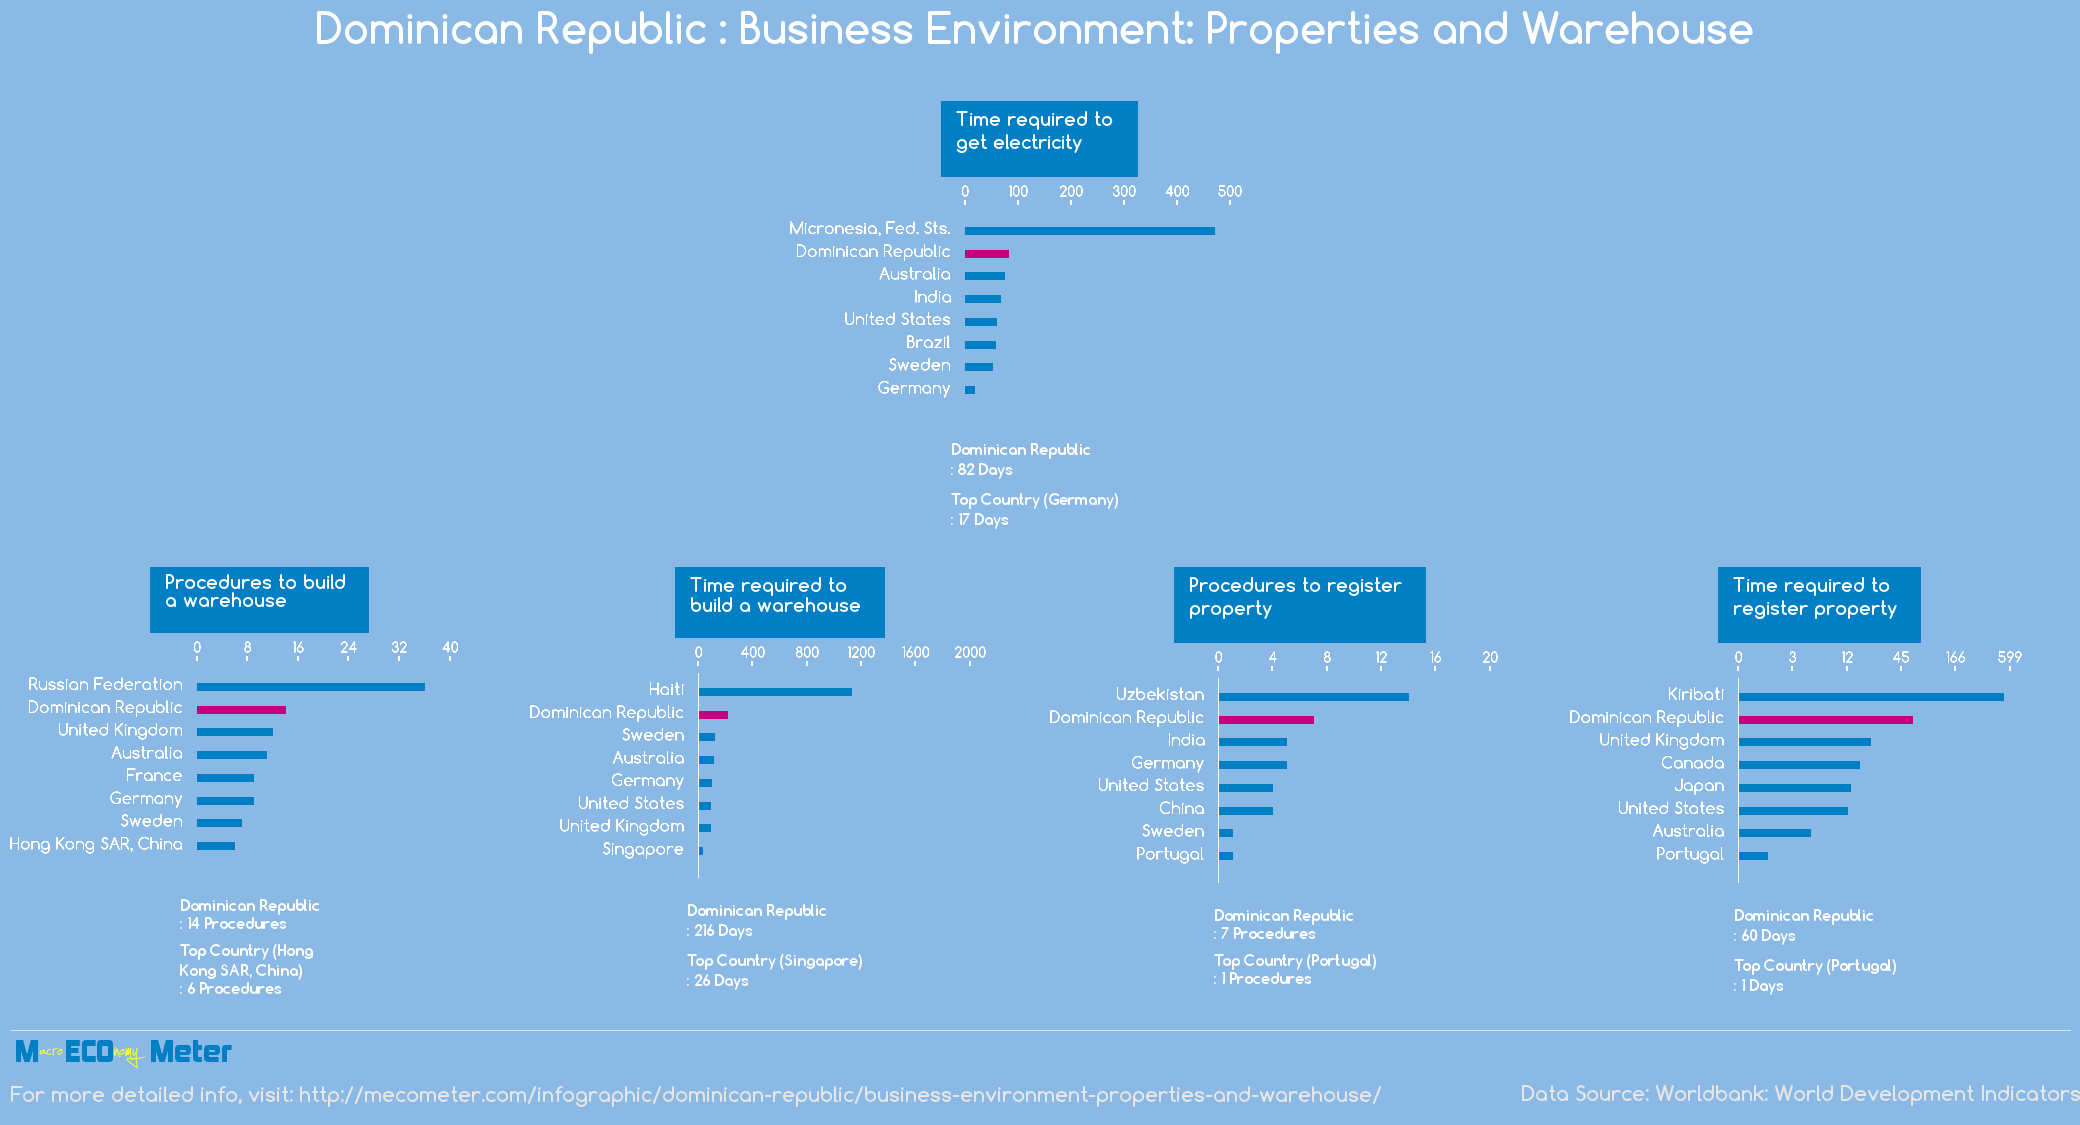 Dominican Republic : Business Environment: Properties and Warehouse